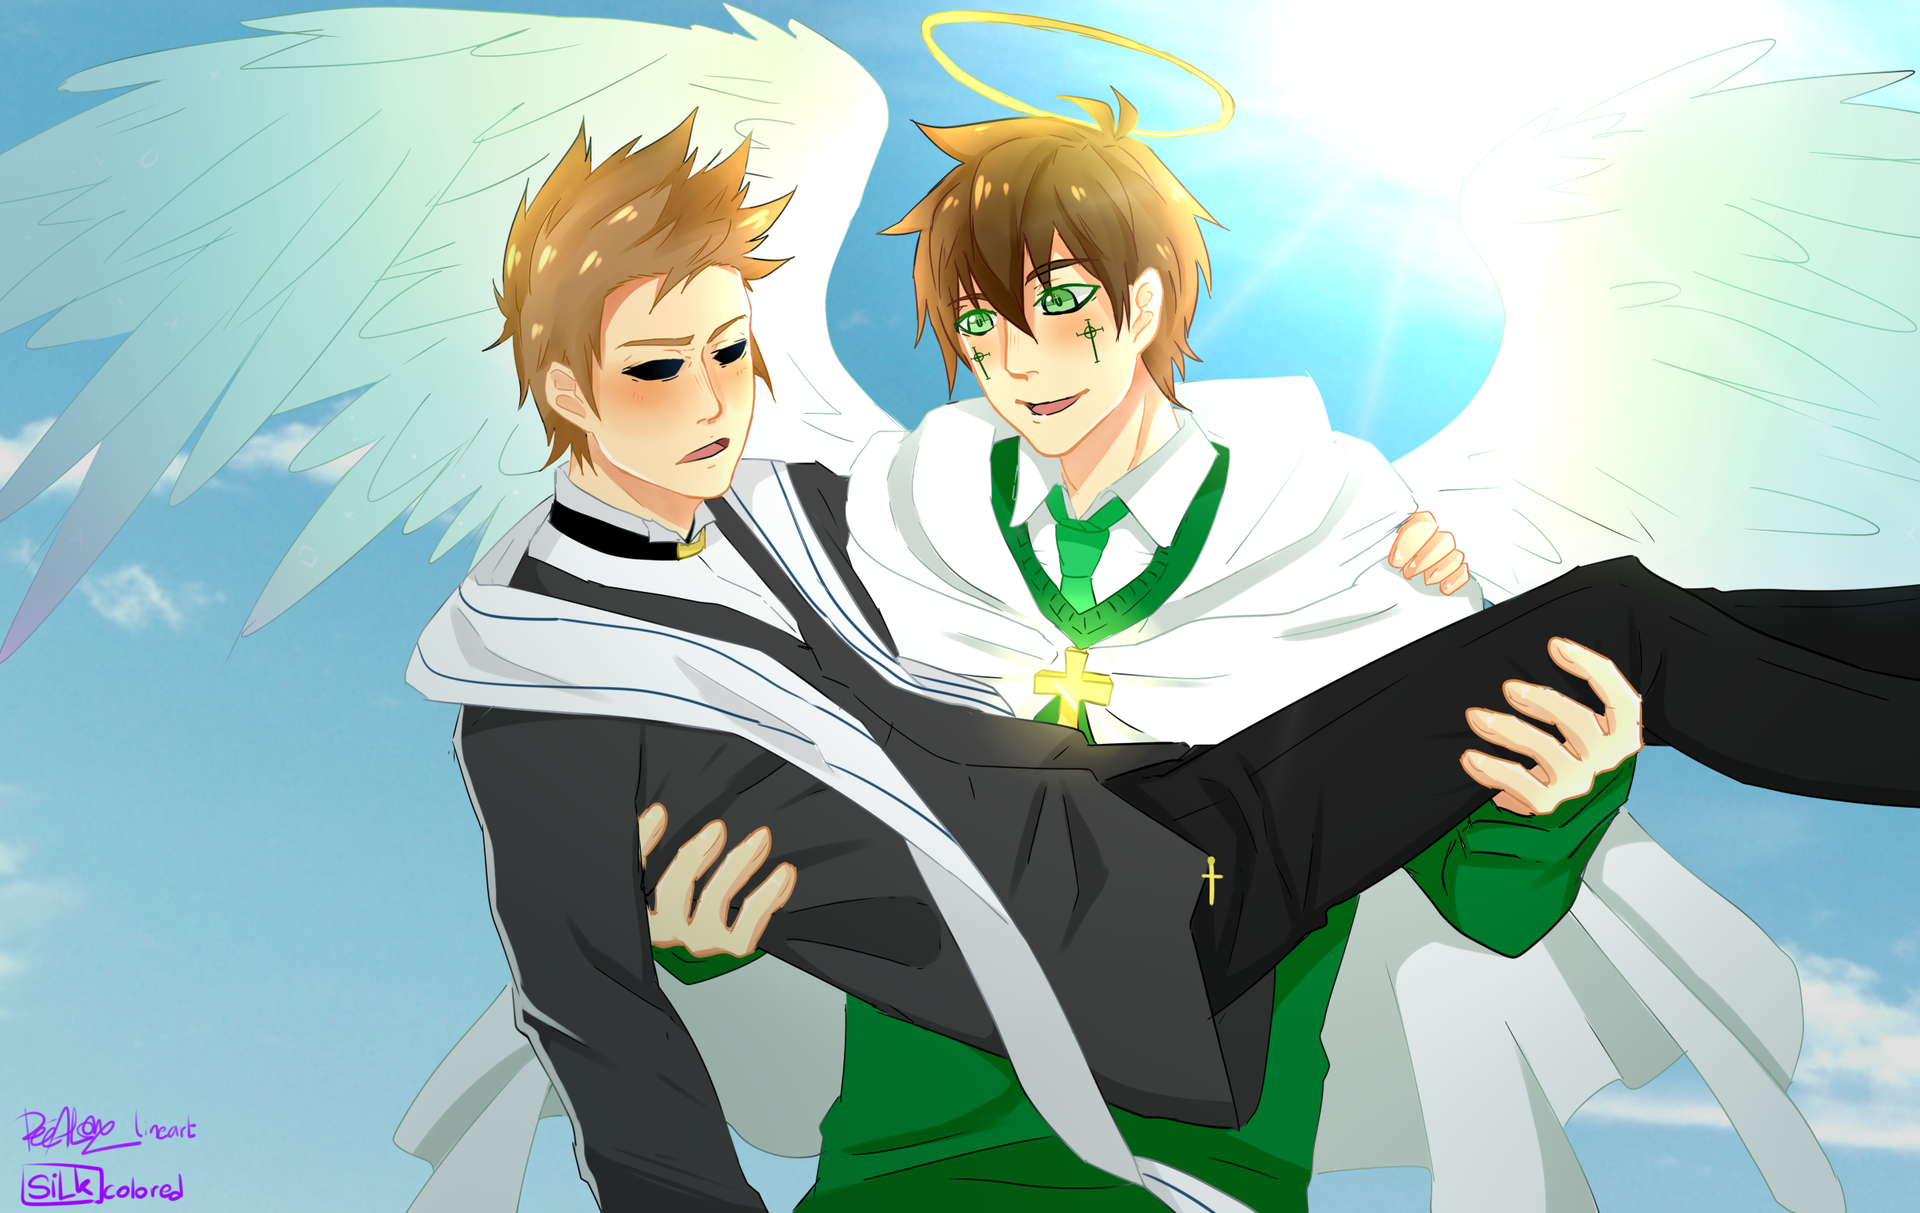 Blessworld Eddsworld au by LouwinSilk on youtube | Eddsworld